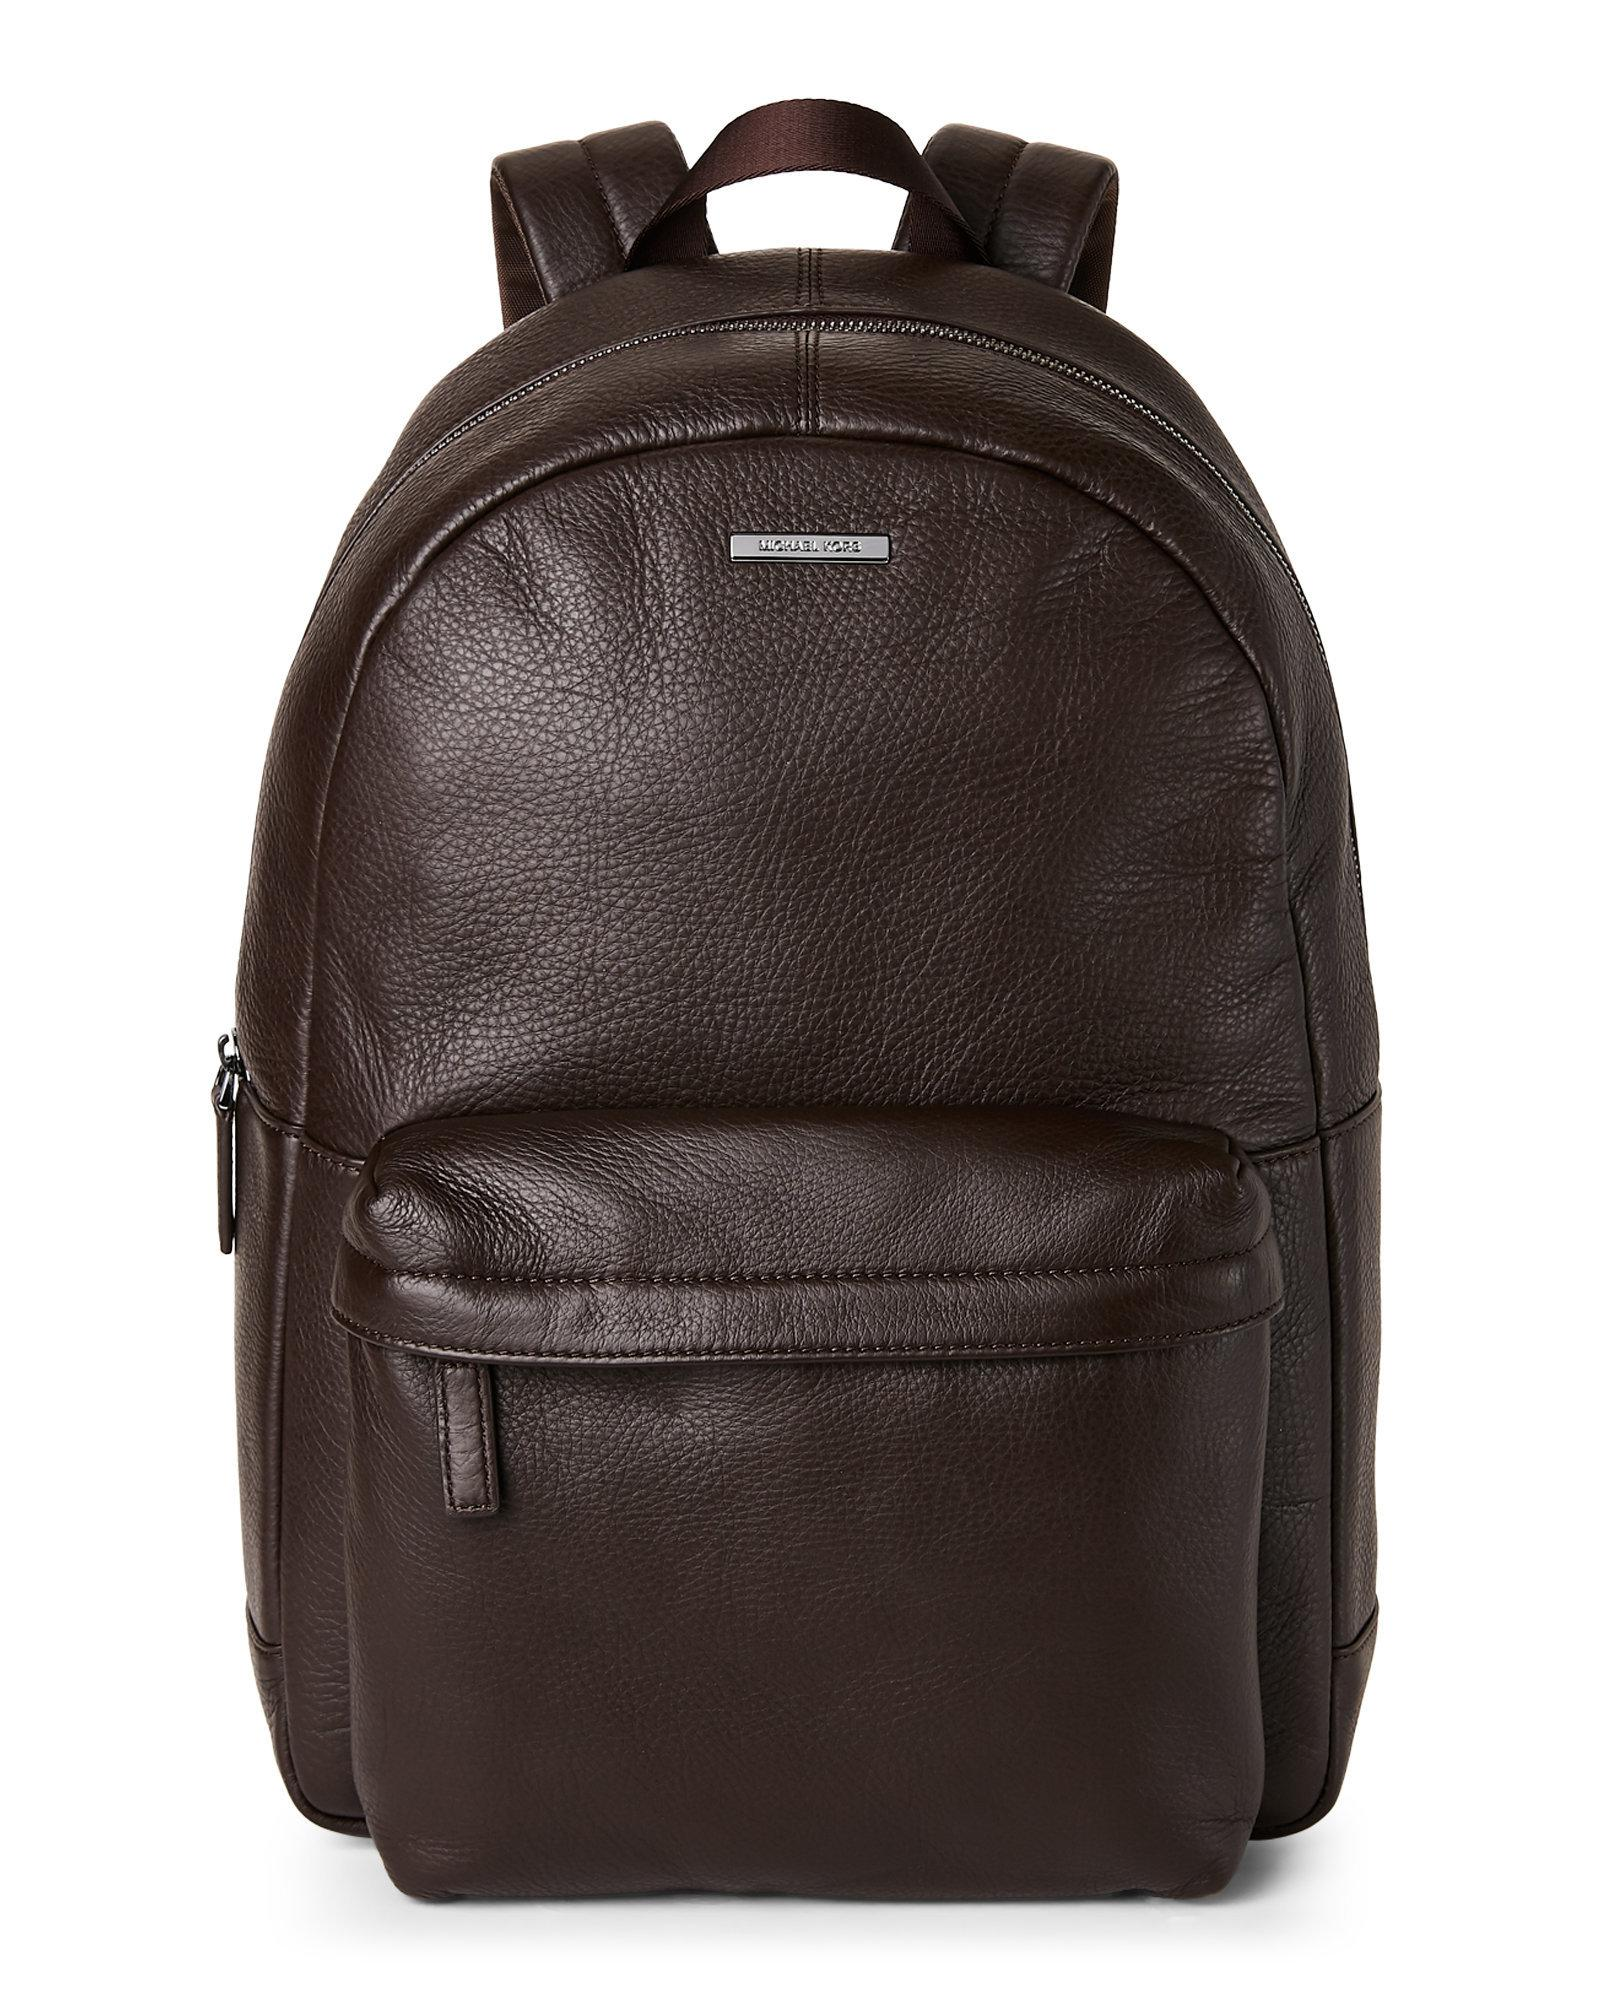 9772e2e2baea ... featuring bags, backpacks Lyst - Michael Kors Stephen Leather Backpack  in Brown for Me ...